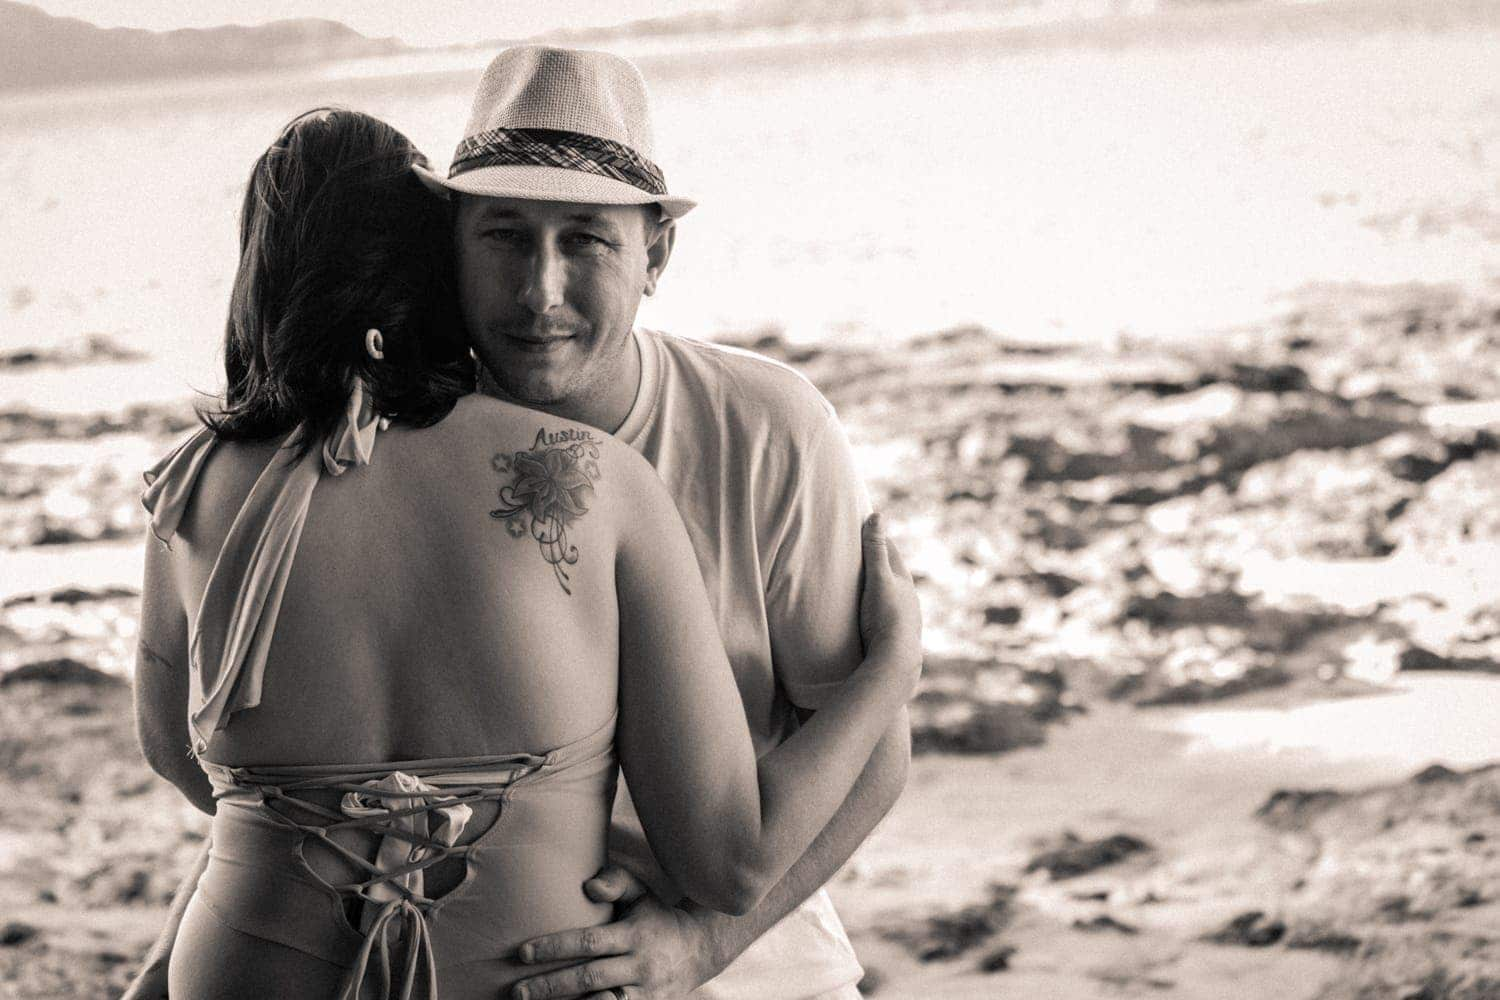 Engagement photo of couple hugging on beach by Arenas Foto.